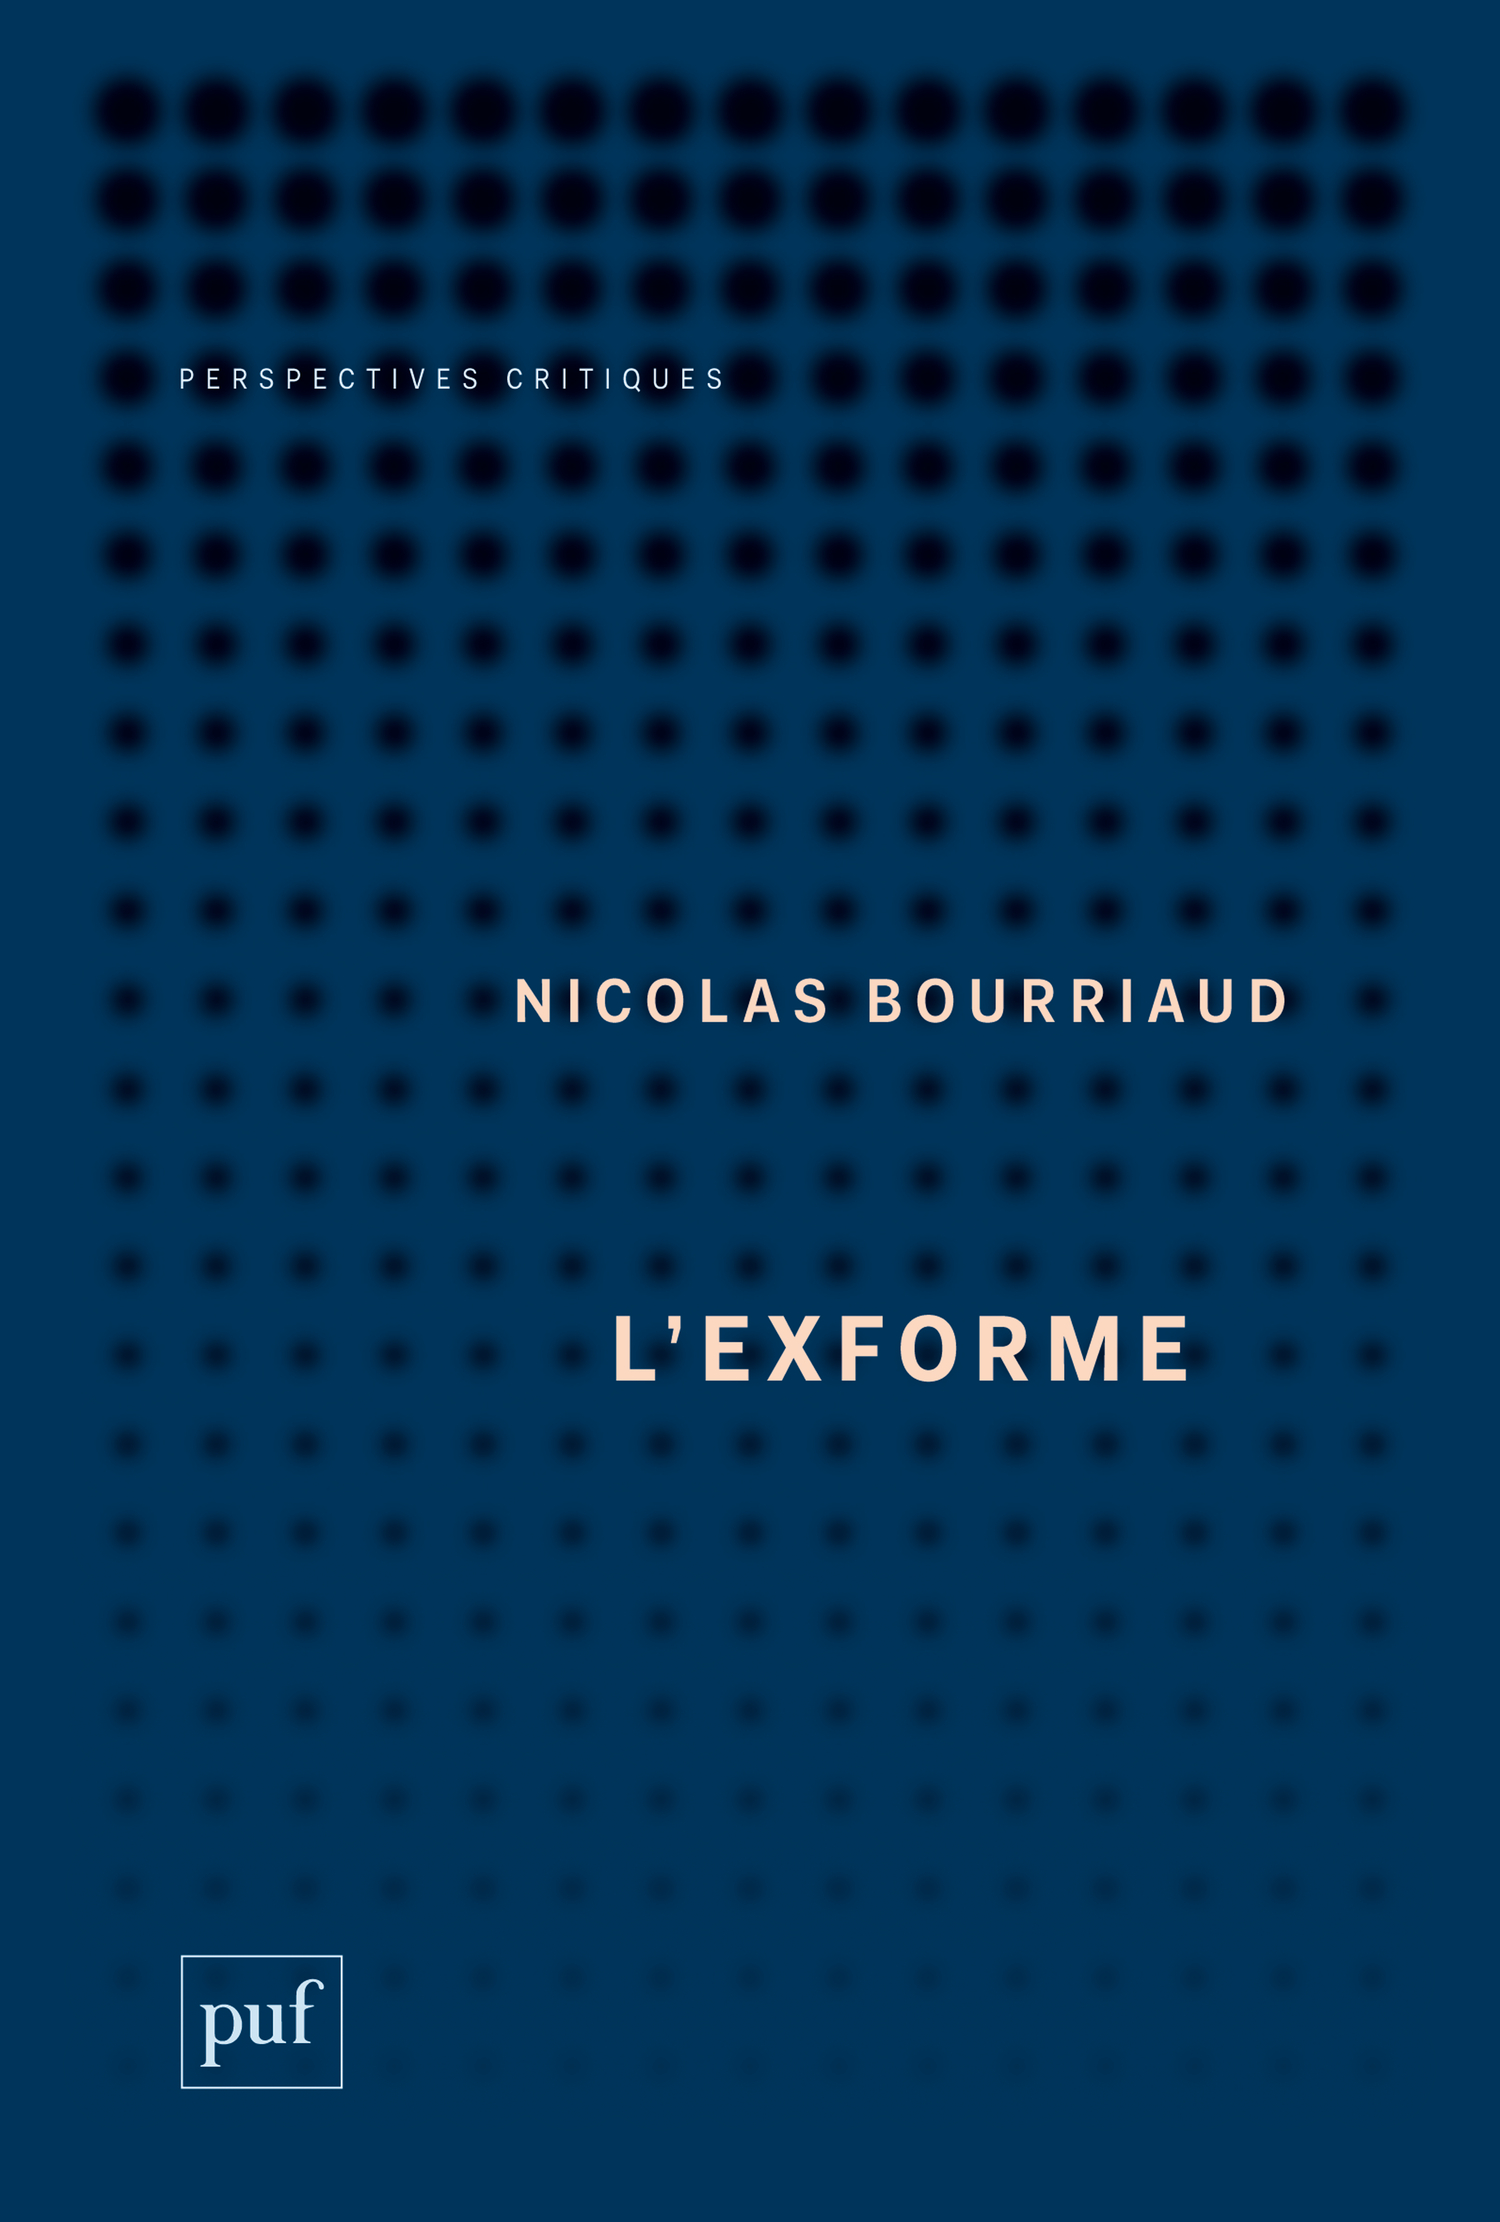 L'exforme De Nicolas Bourriaud - Presses Universitaires de France